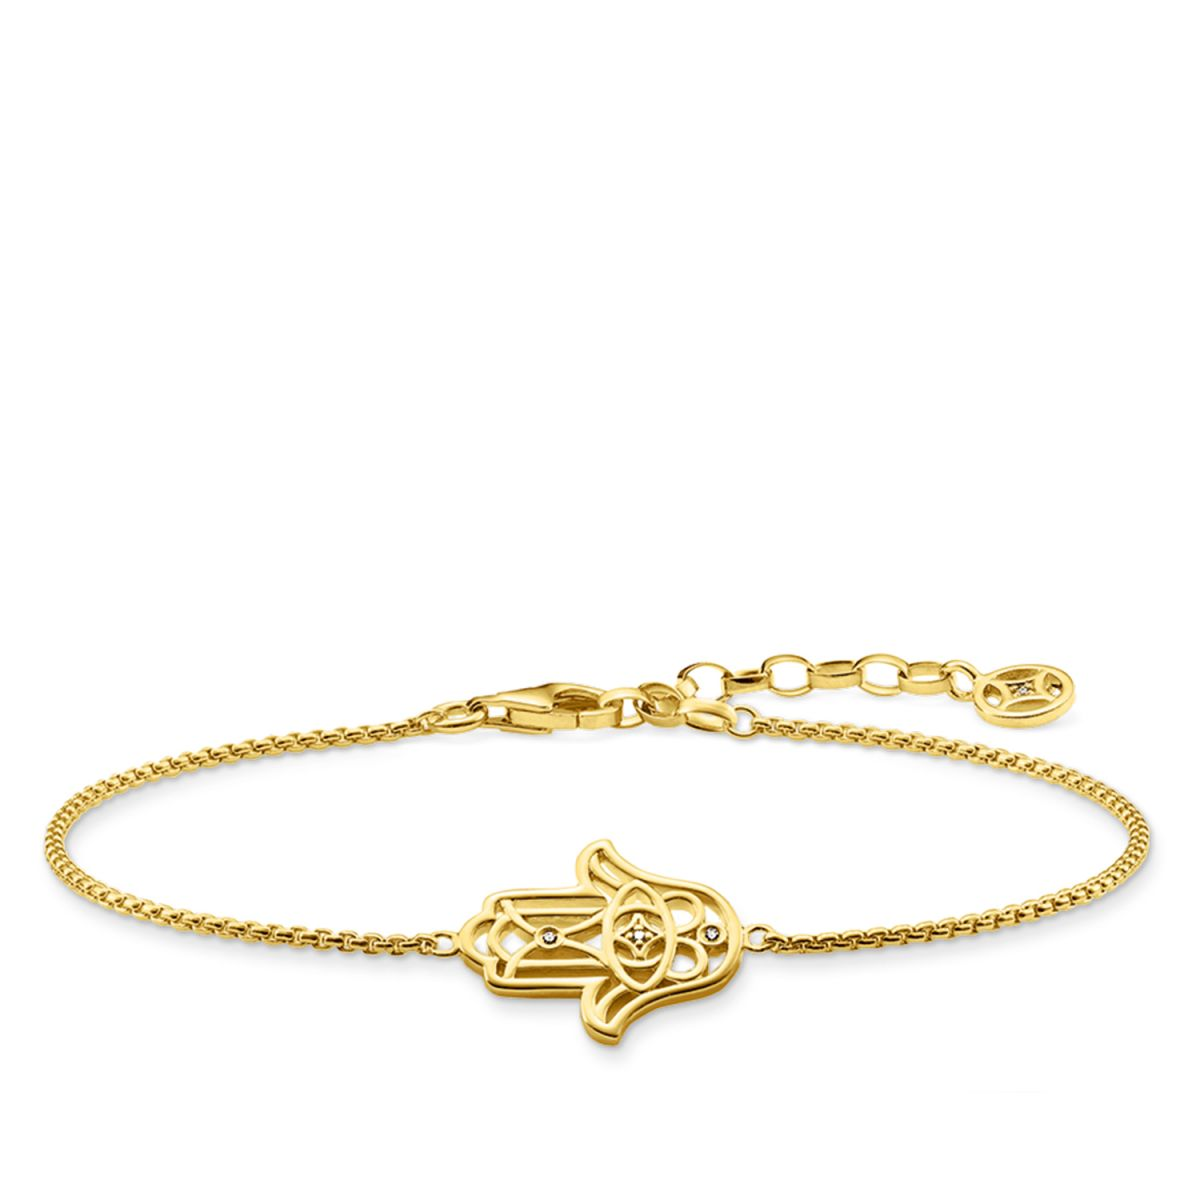 Buy Cheap Official Buy Cheap 2018 New Thomas Sabo bracelet yellow gold-coloured D_A0028-924-39-L19v Thomas Sabo Brand New Unisex Cheap Price Cheap Best Sale QL3XIsy